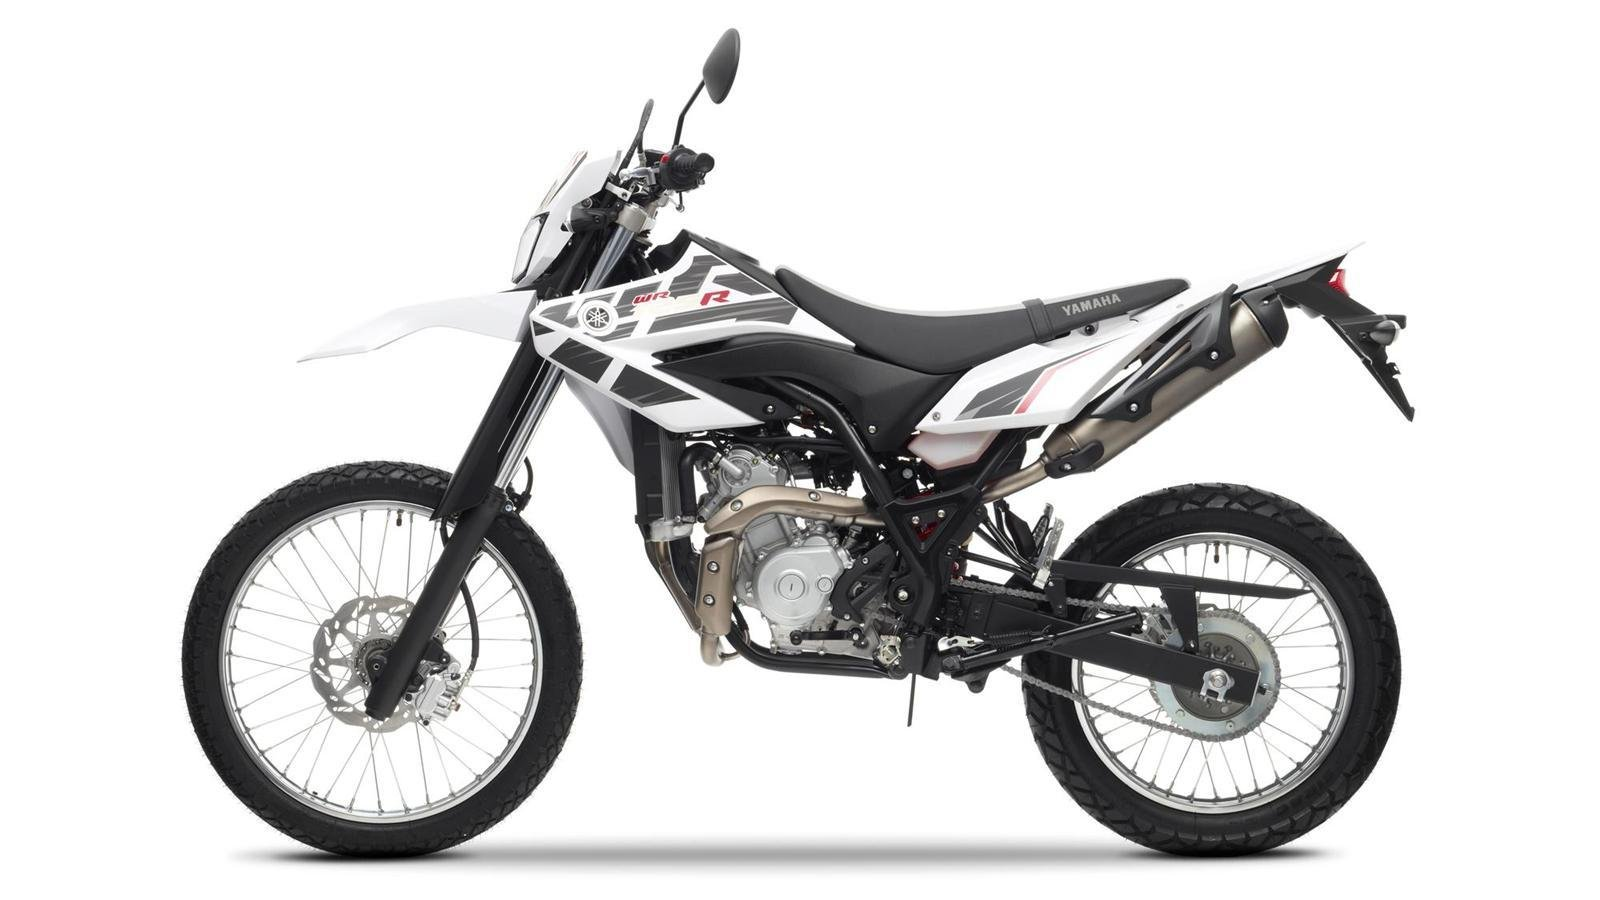 2013 yamaha wr125r picture 501358 motorcycle review. Black Bedroom Furniture Sets. Home Design Ideas